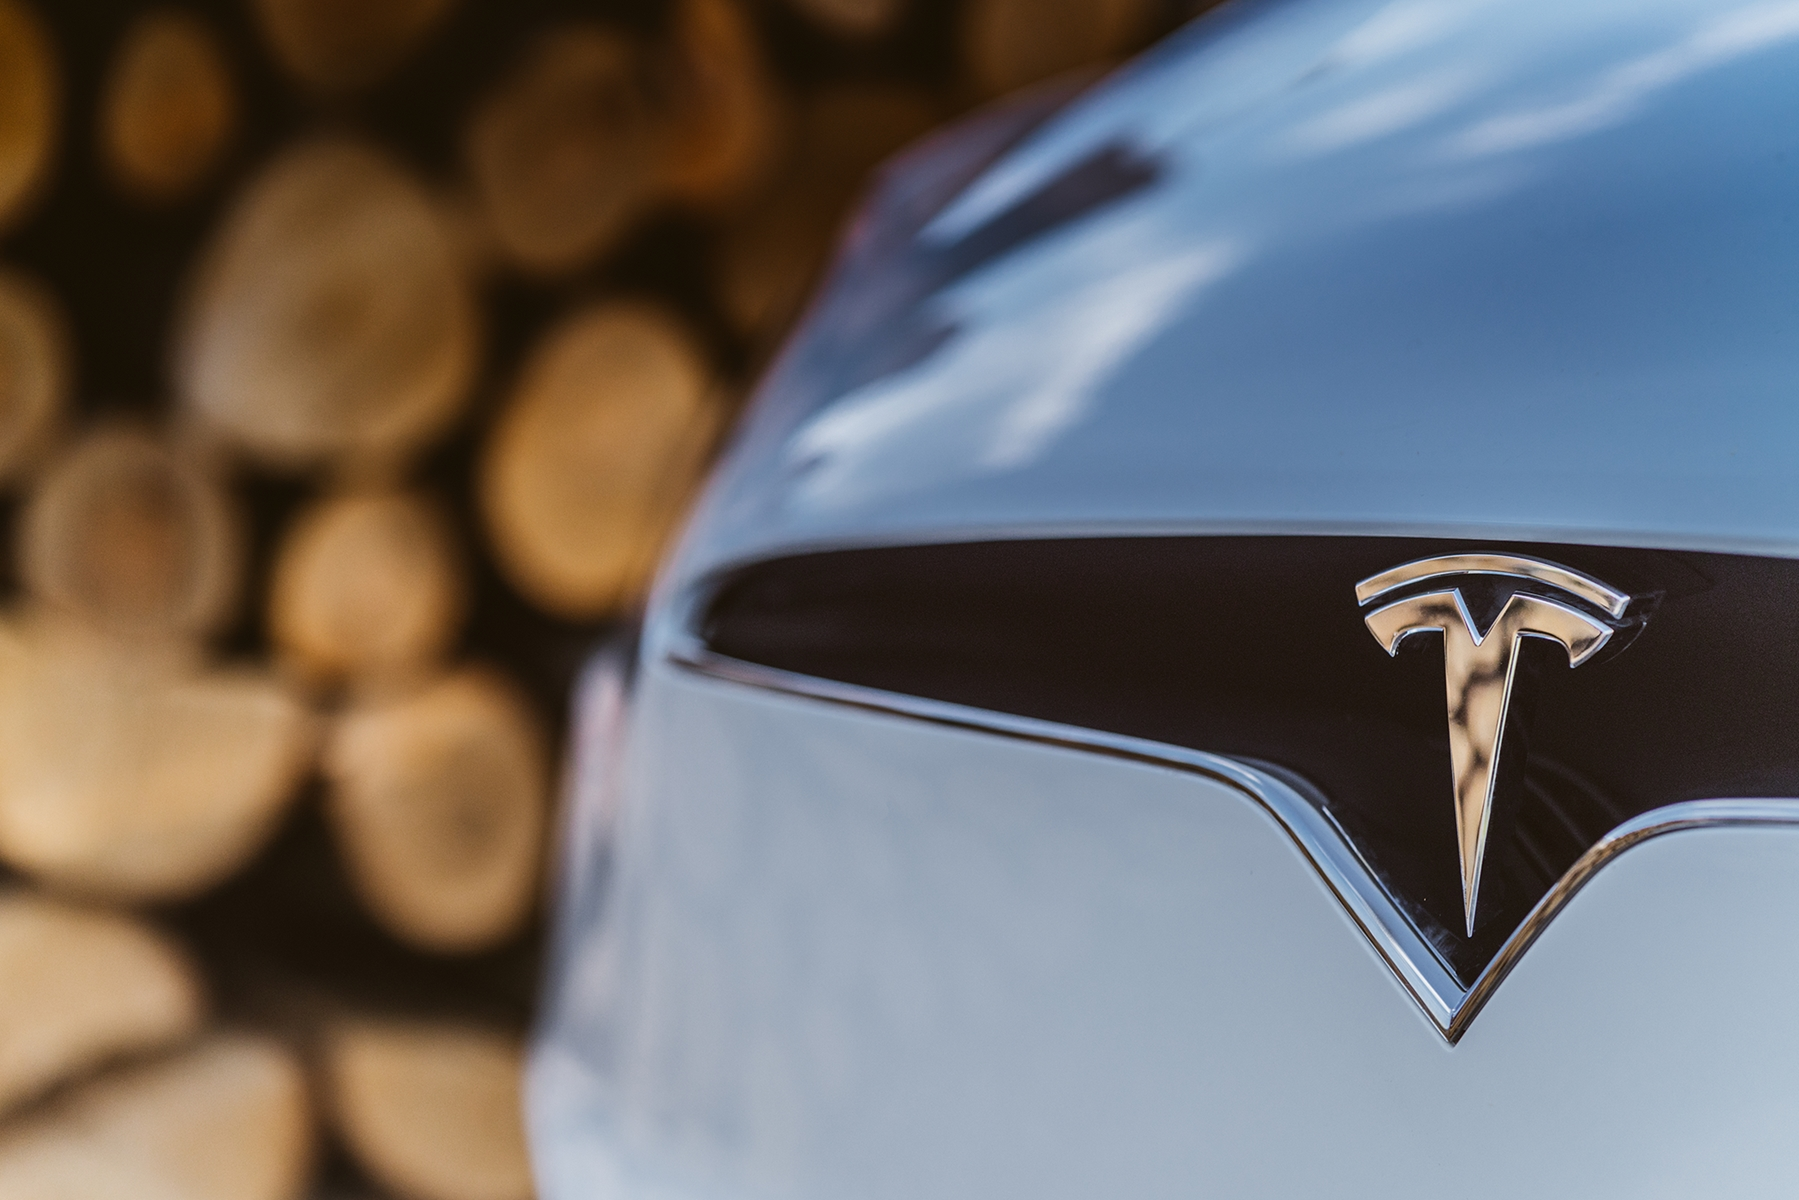 White-Logo-Tesla-Model-X-Wooden-Logs